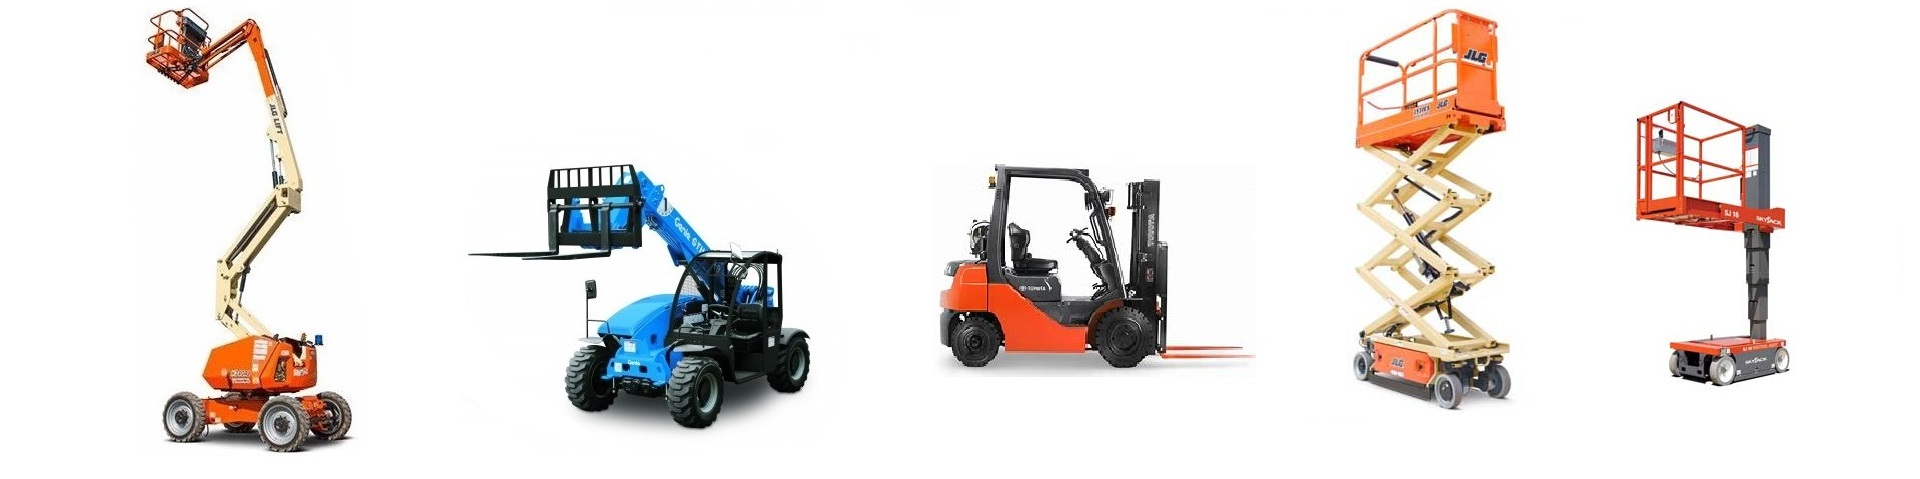 Equipment rentals in Calgary Alberta